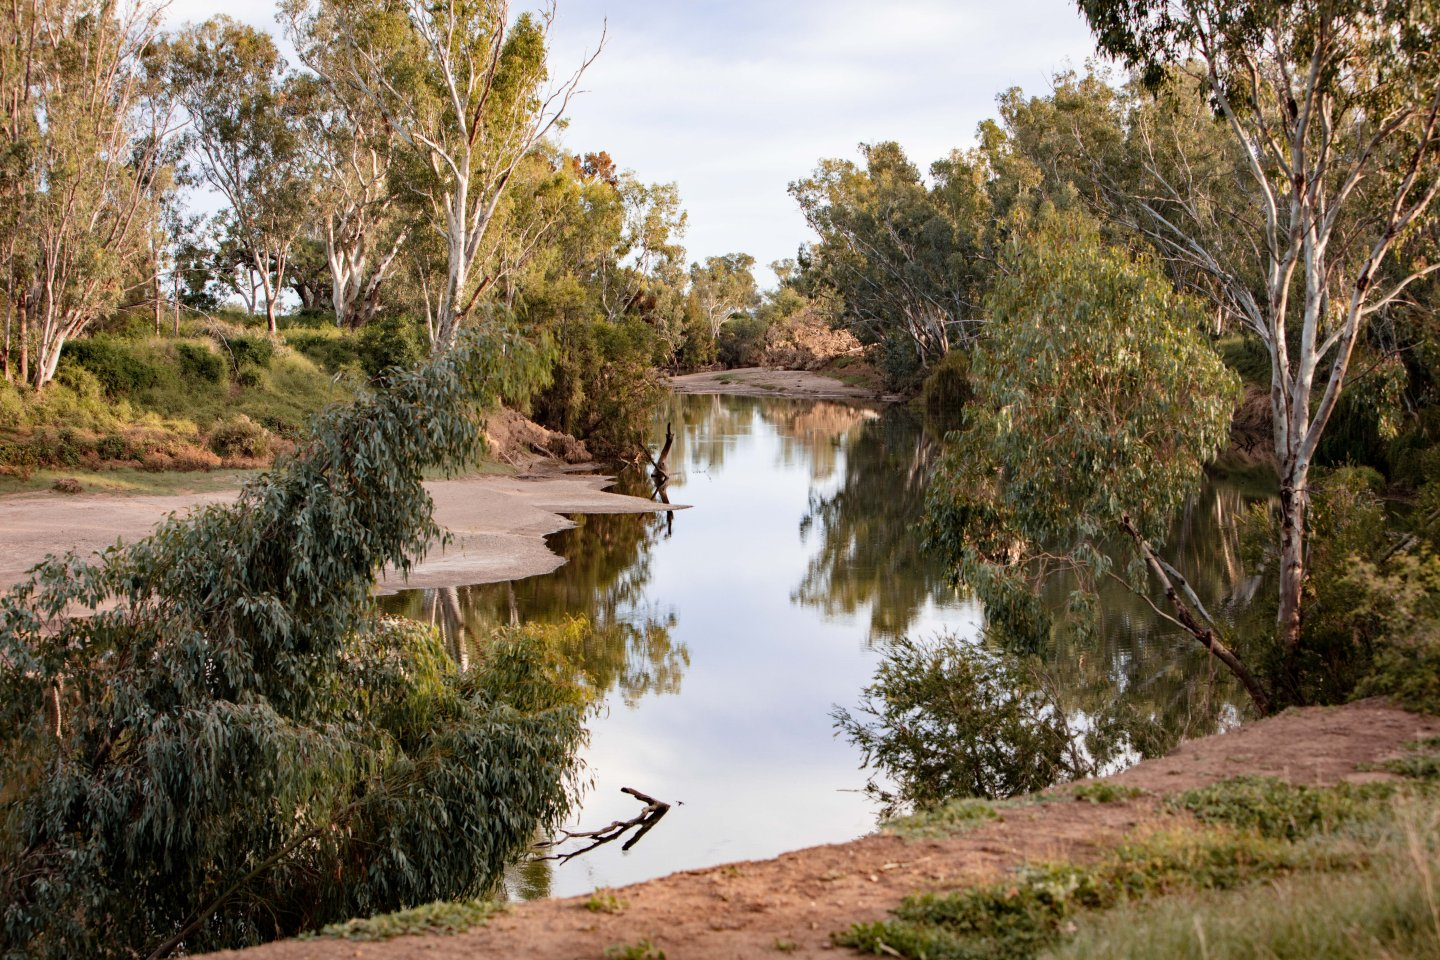 Water licences, work approvals, and water use approvals